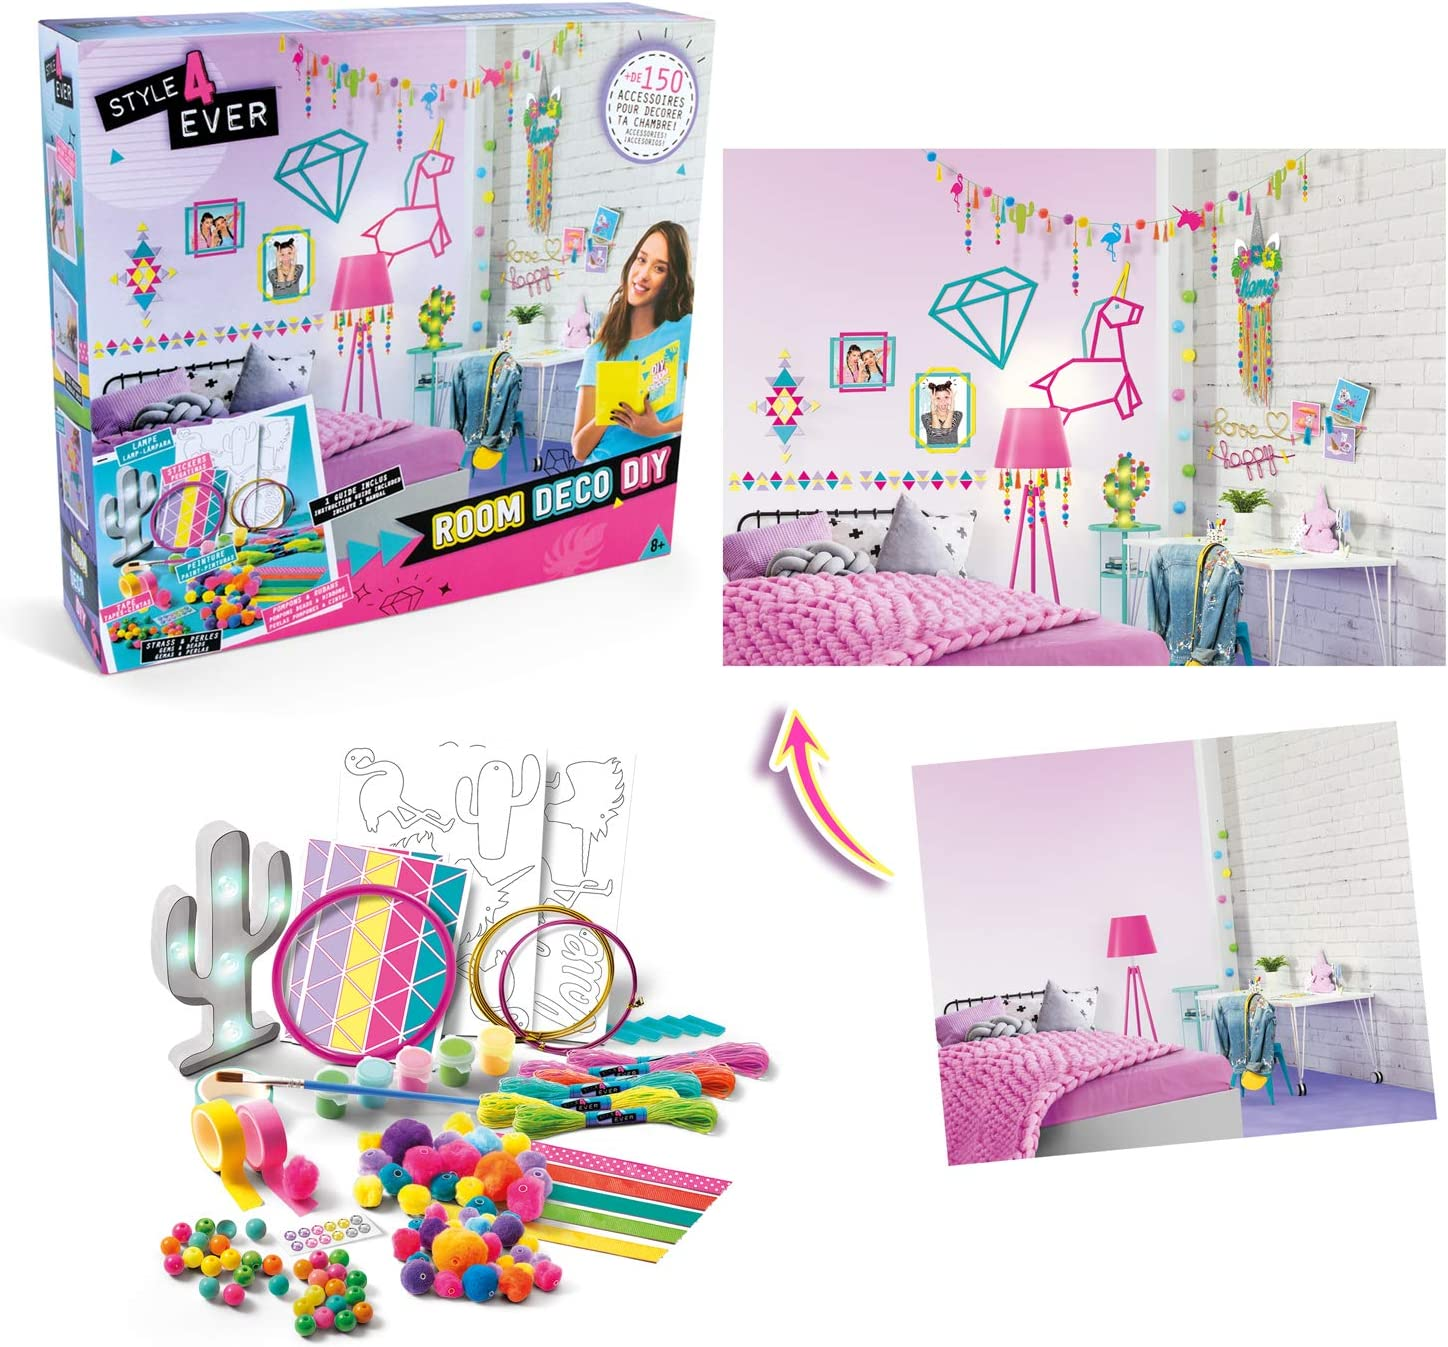 Canal Toys- of 19 Room Deco DIY